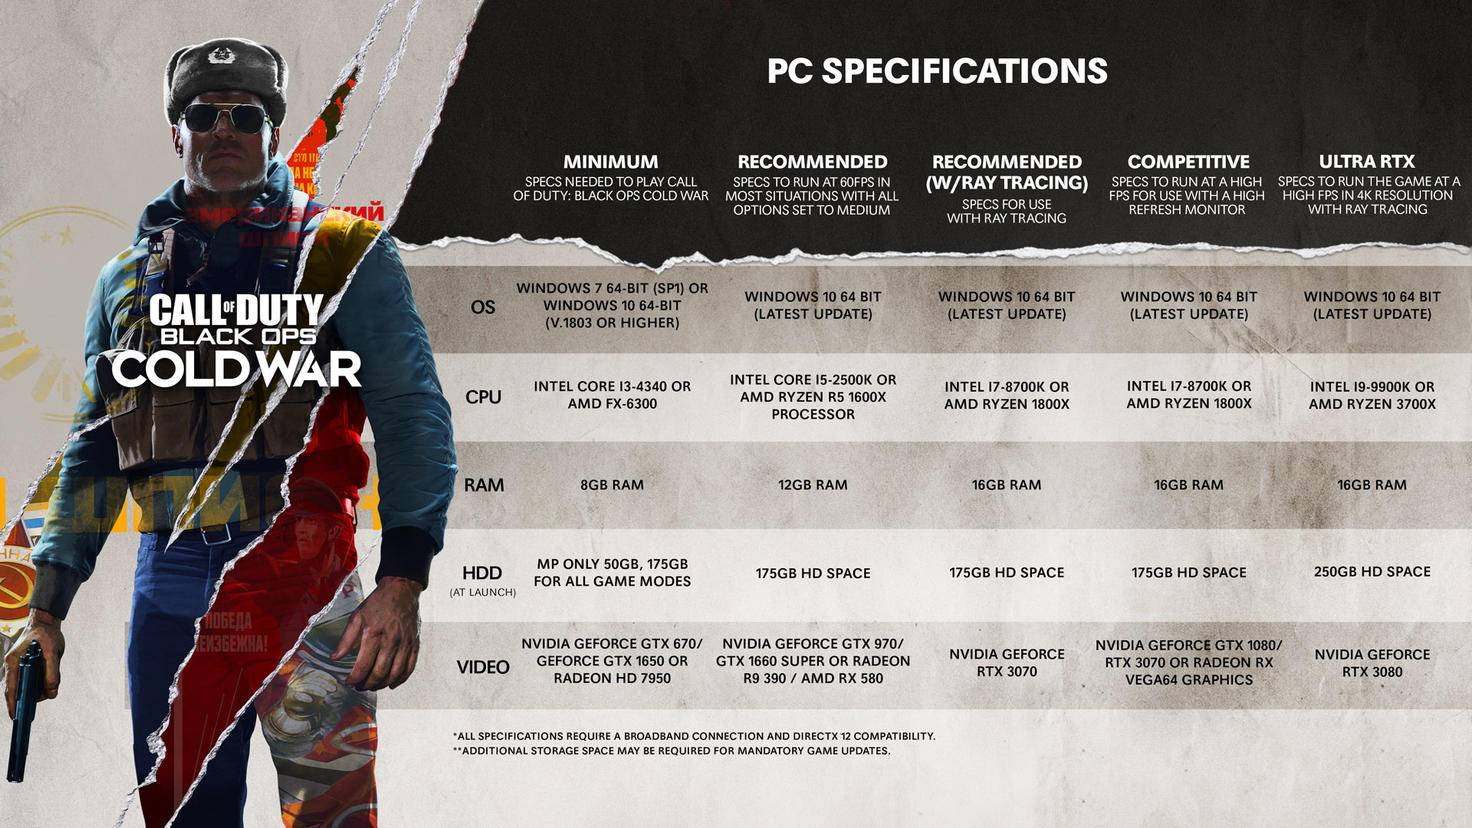 call-of-duty-black-ops-cold-war-specs